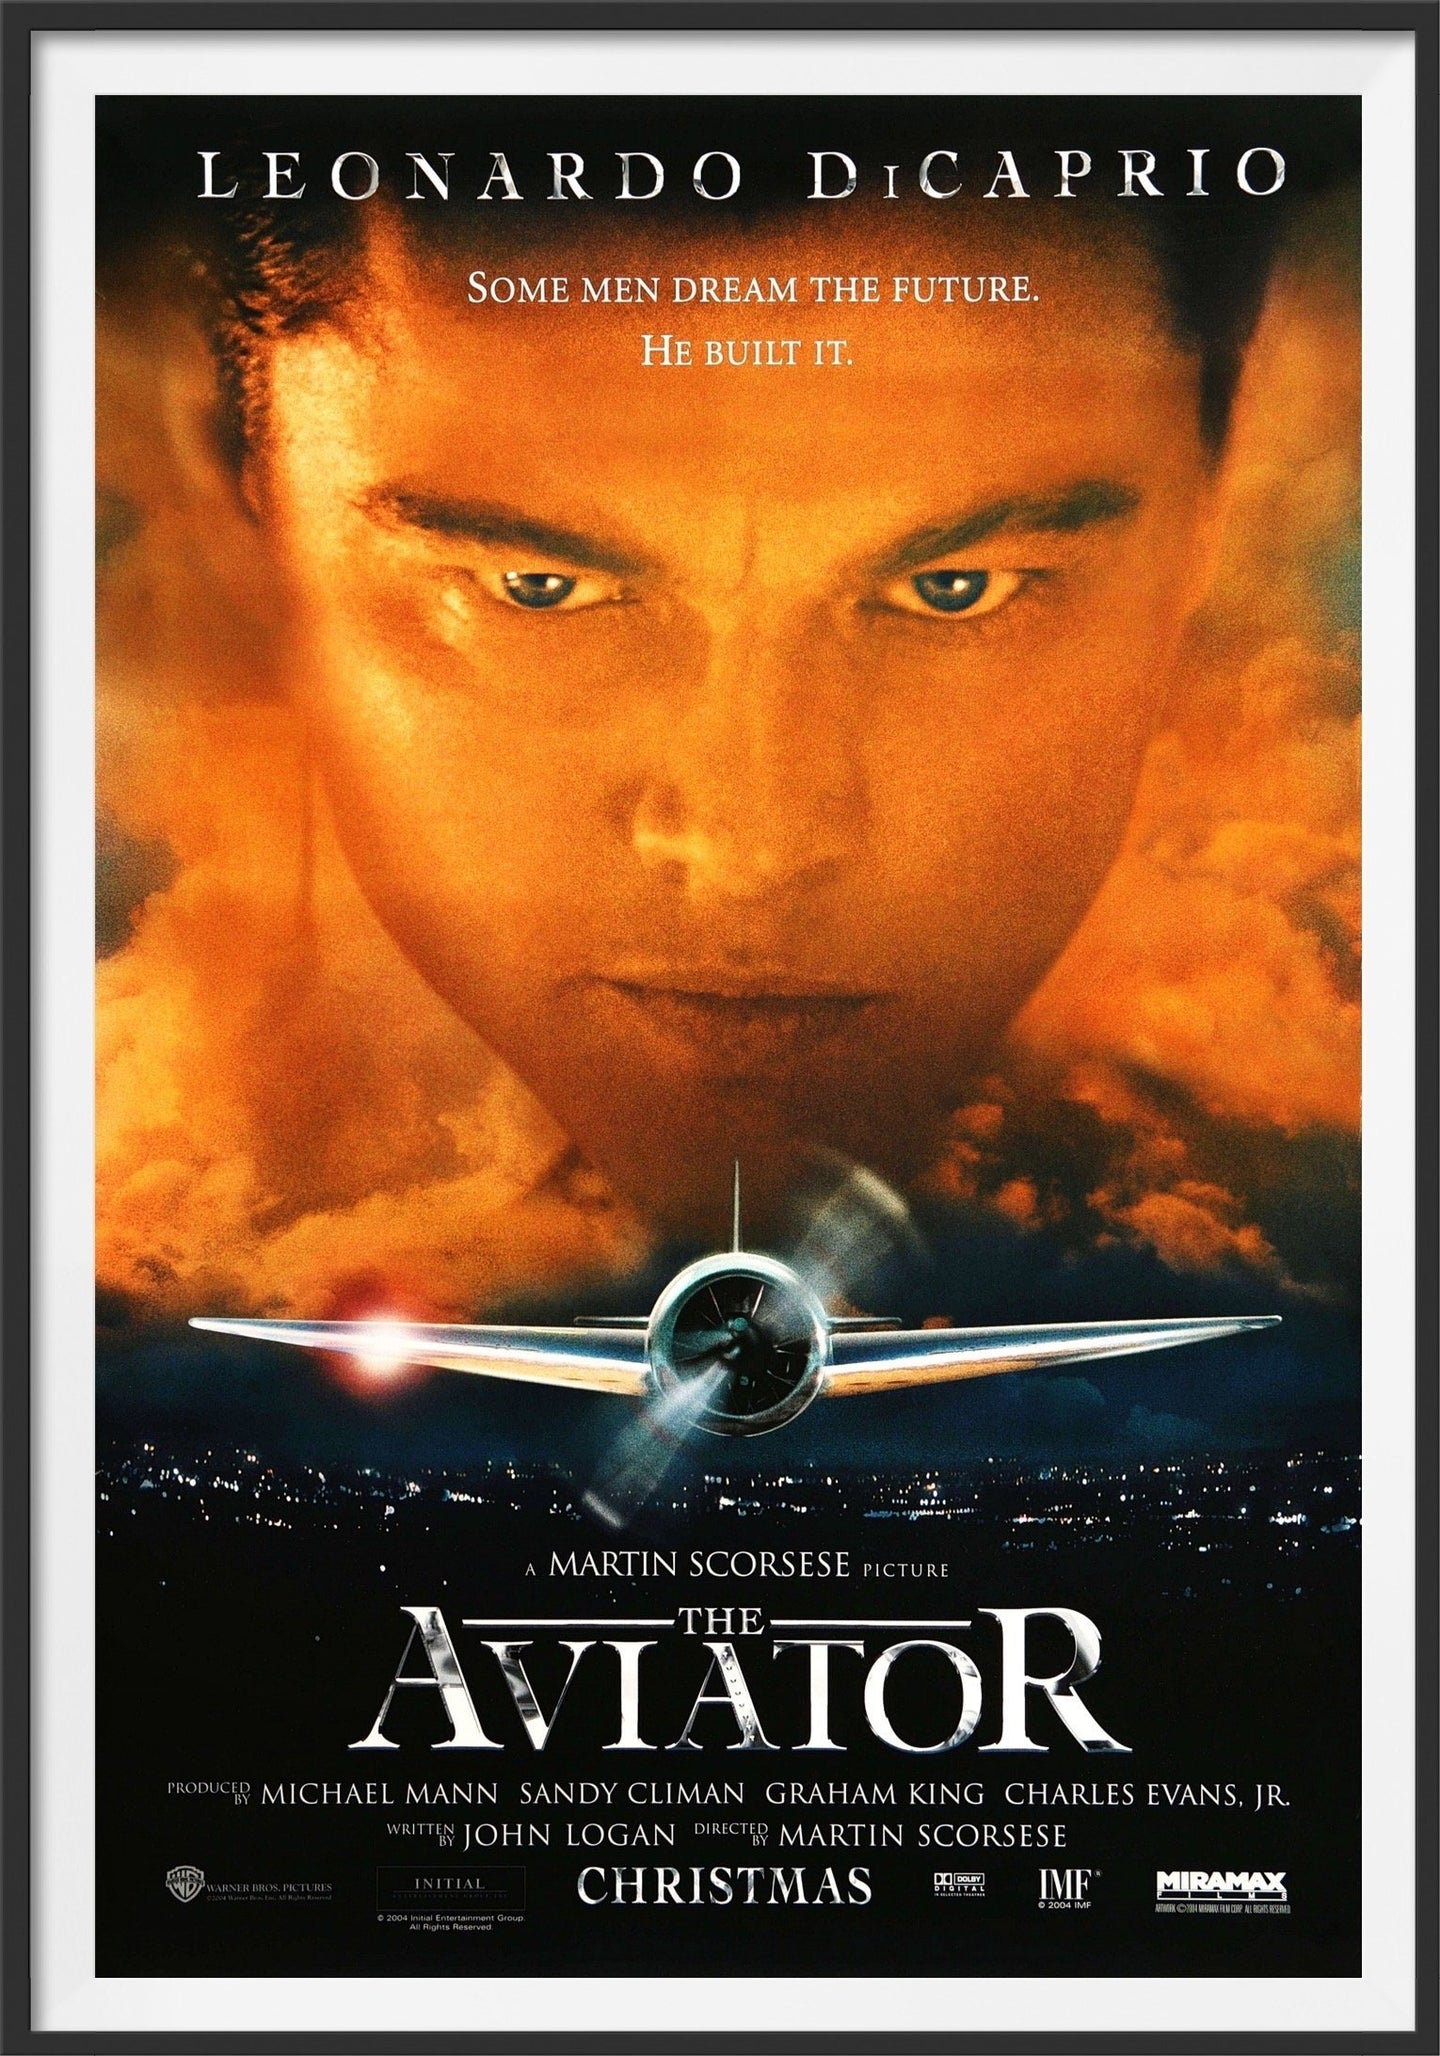 An original movie poster for the Martin Scorsese film The Aviator